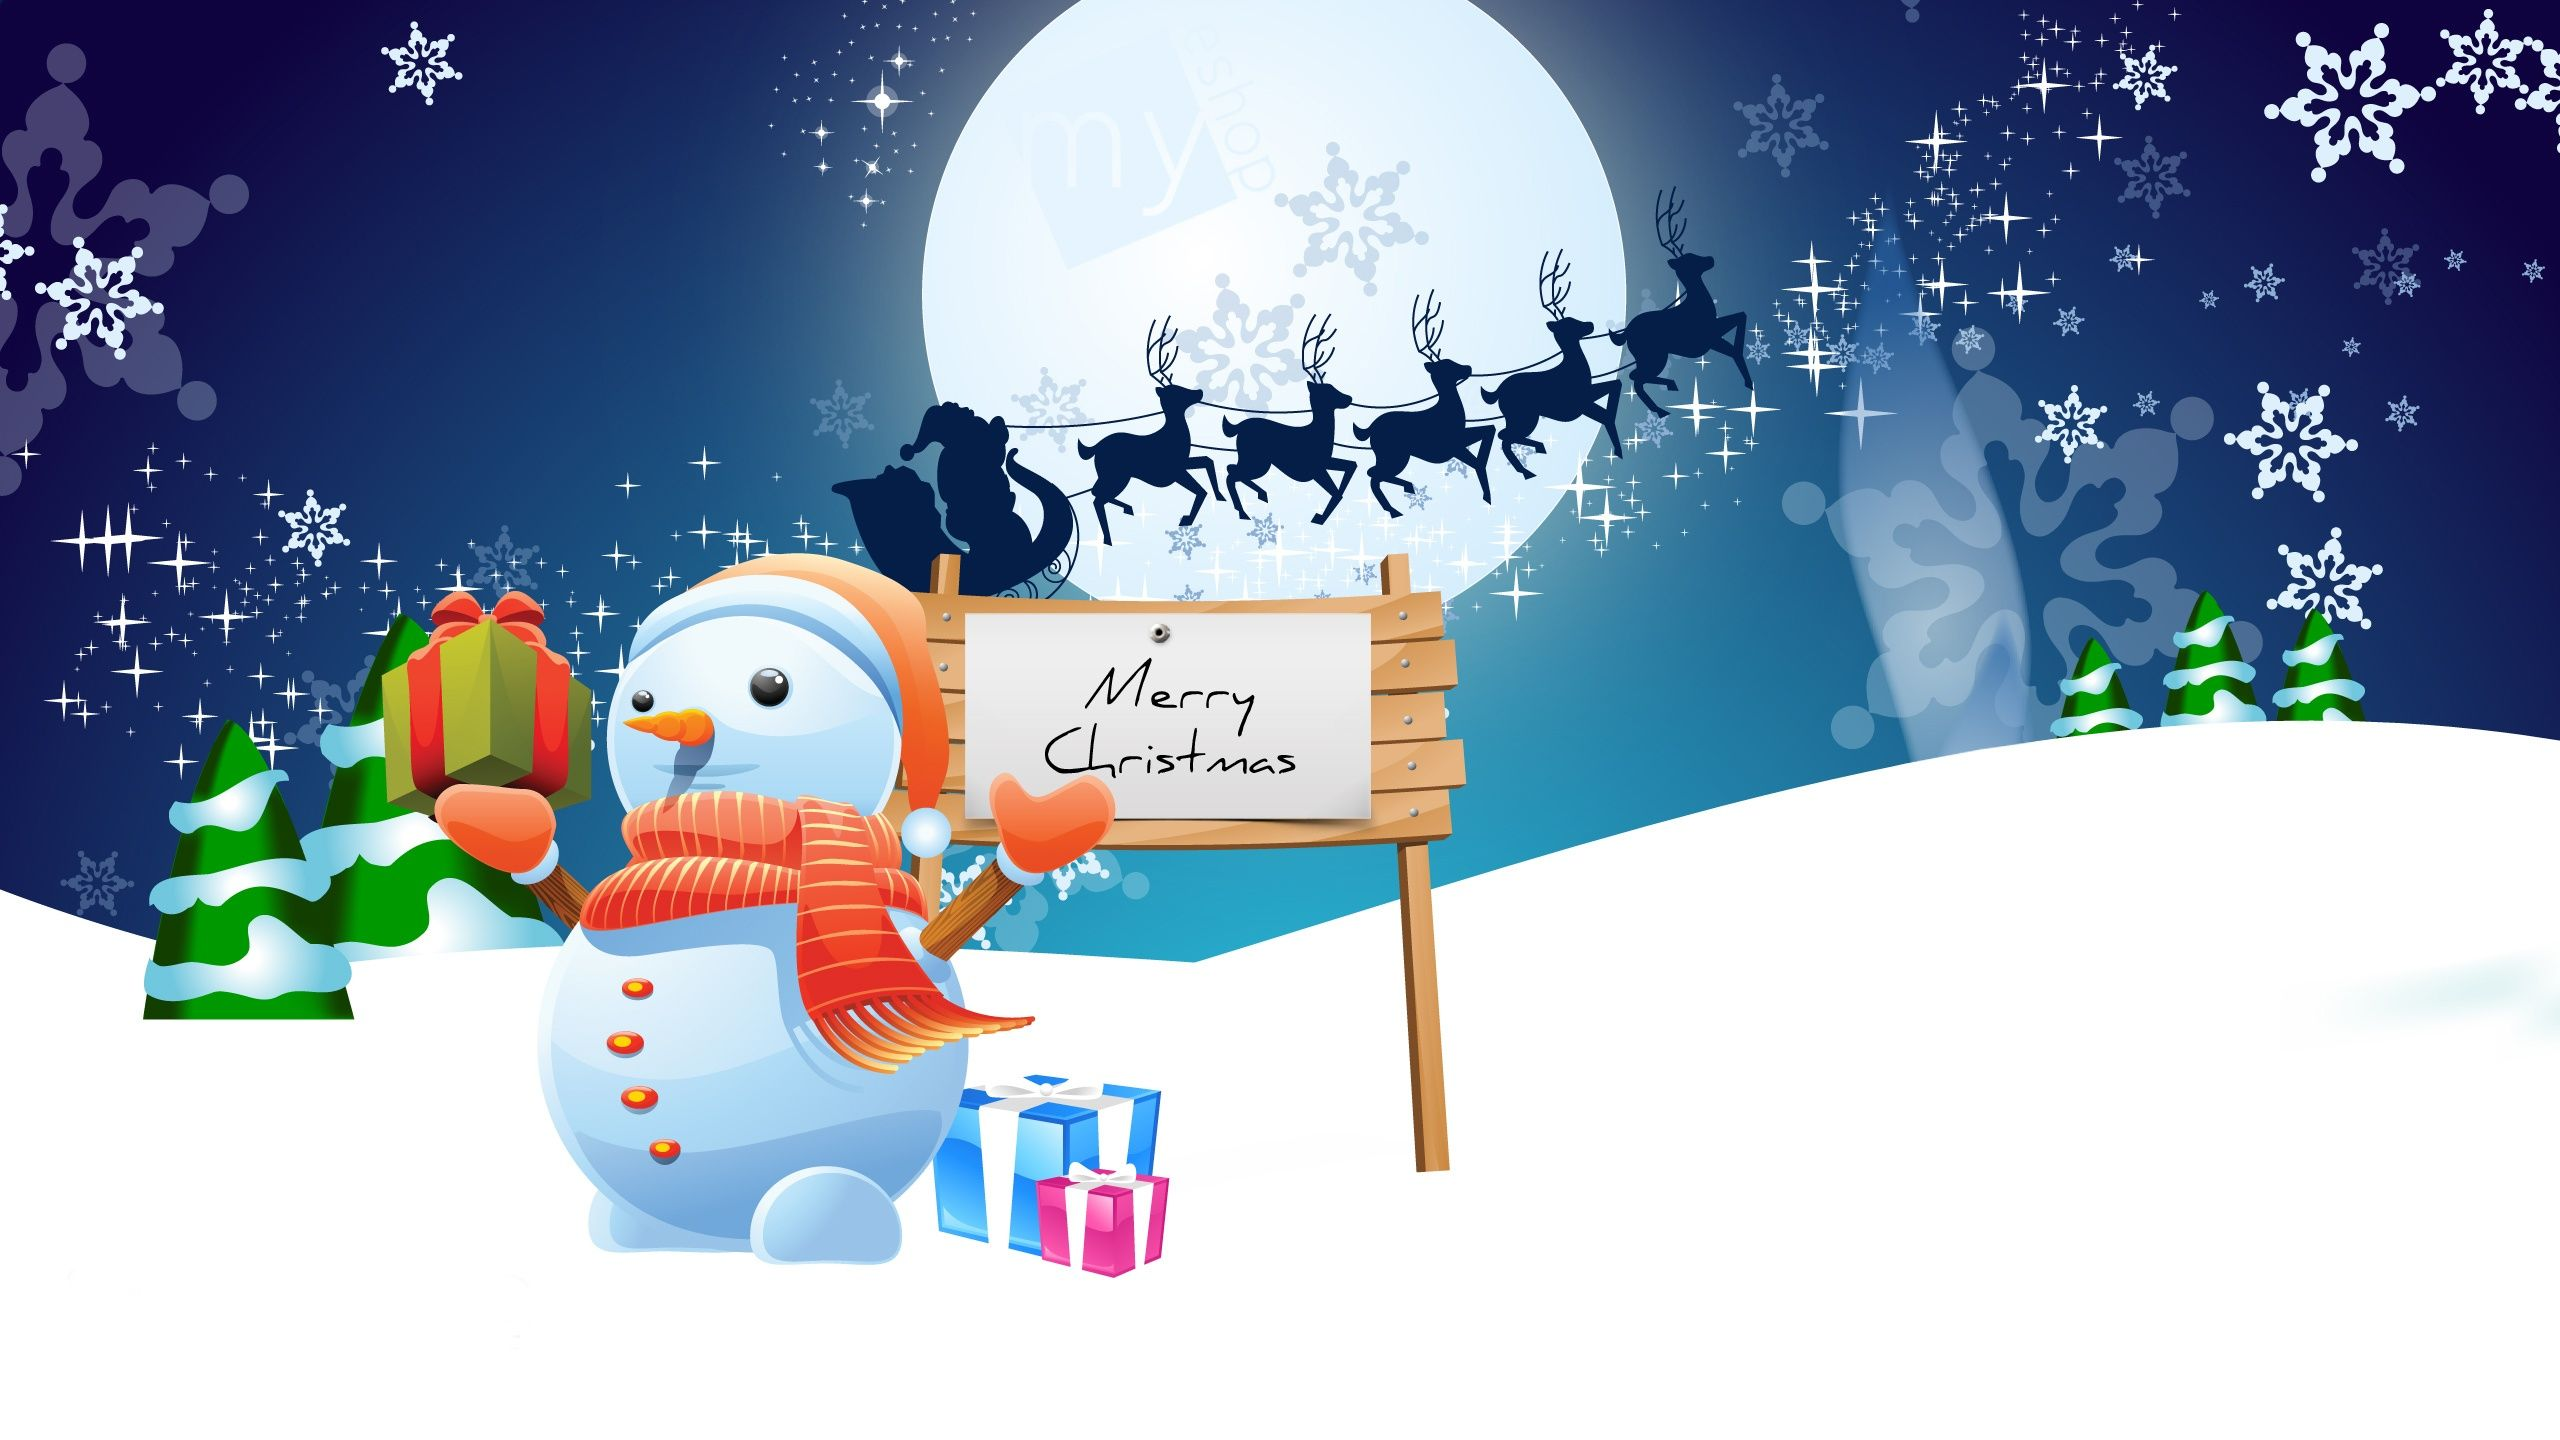 Cute Christmas Picture Hd Merry Christmas Hd Images Merry Christmas Funny Merry Christmas Wallpaper